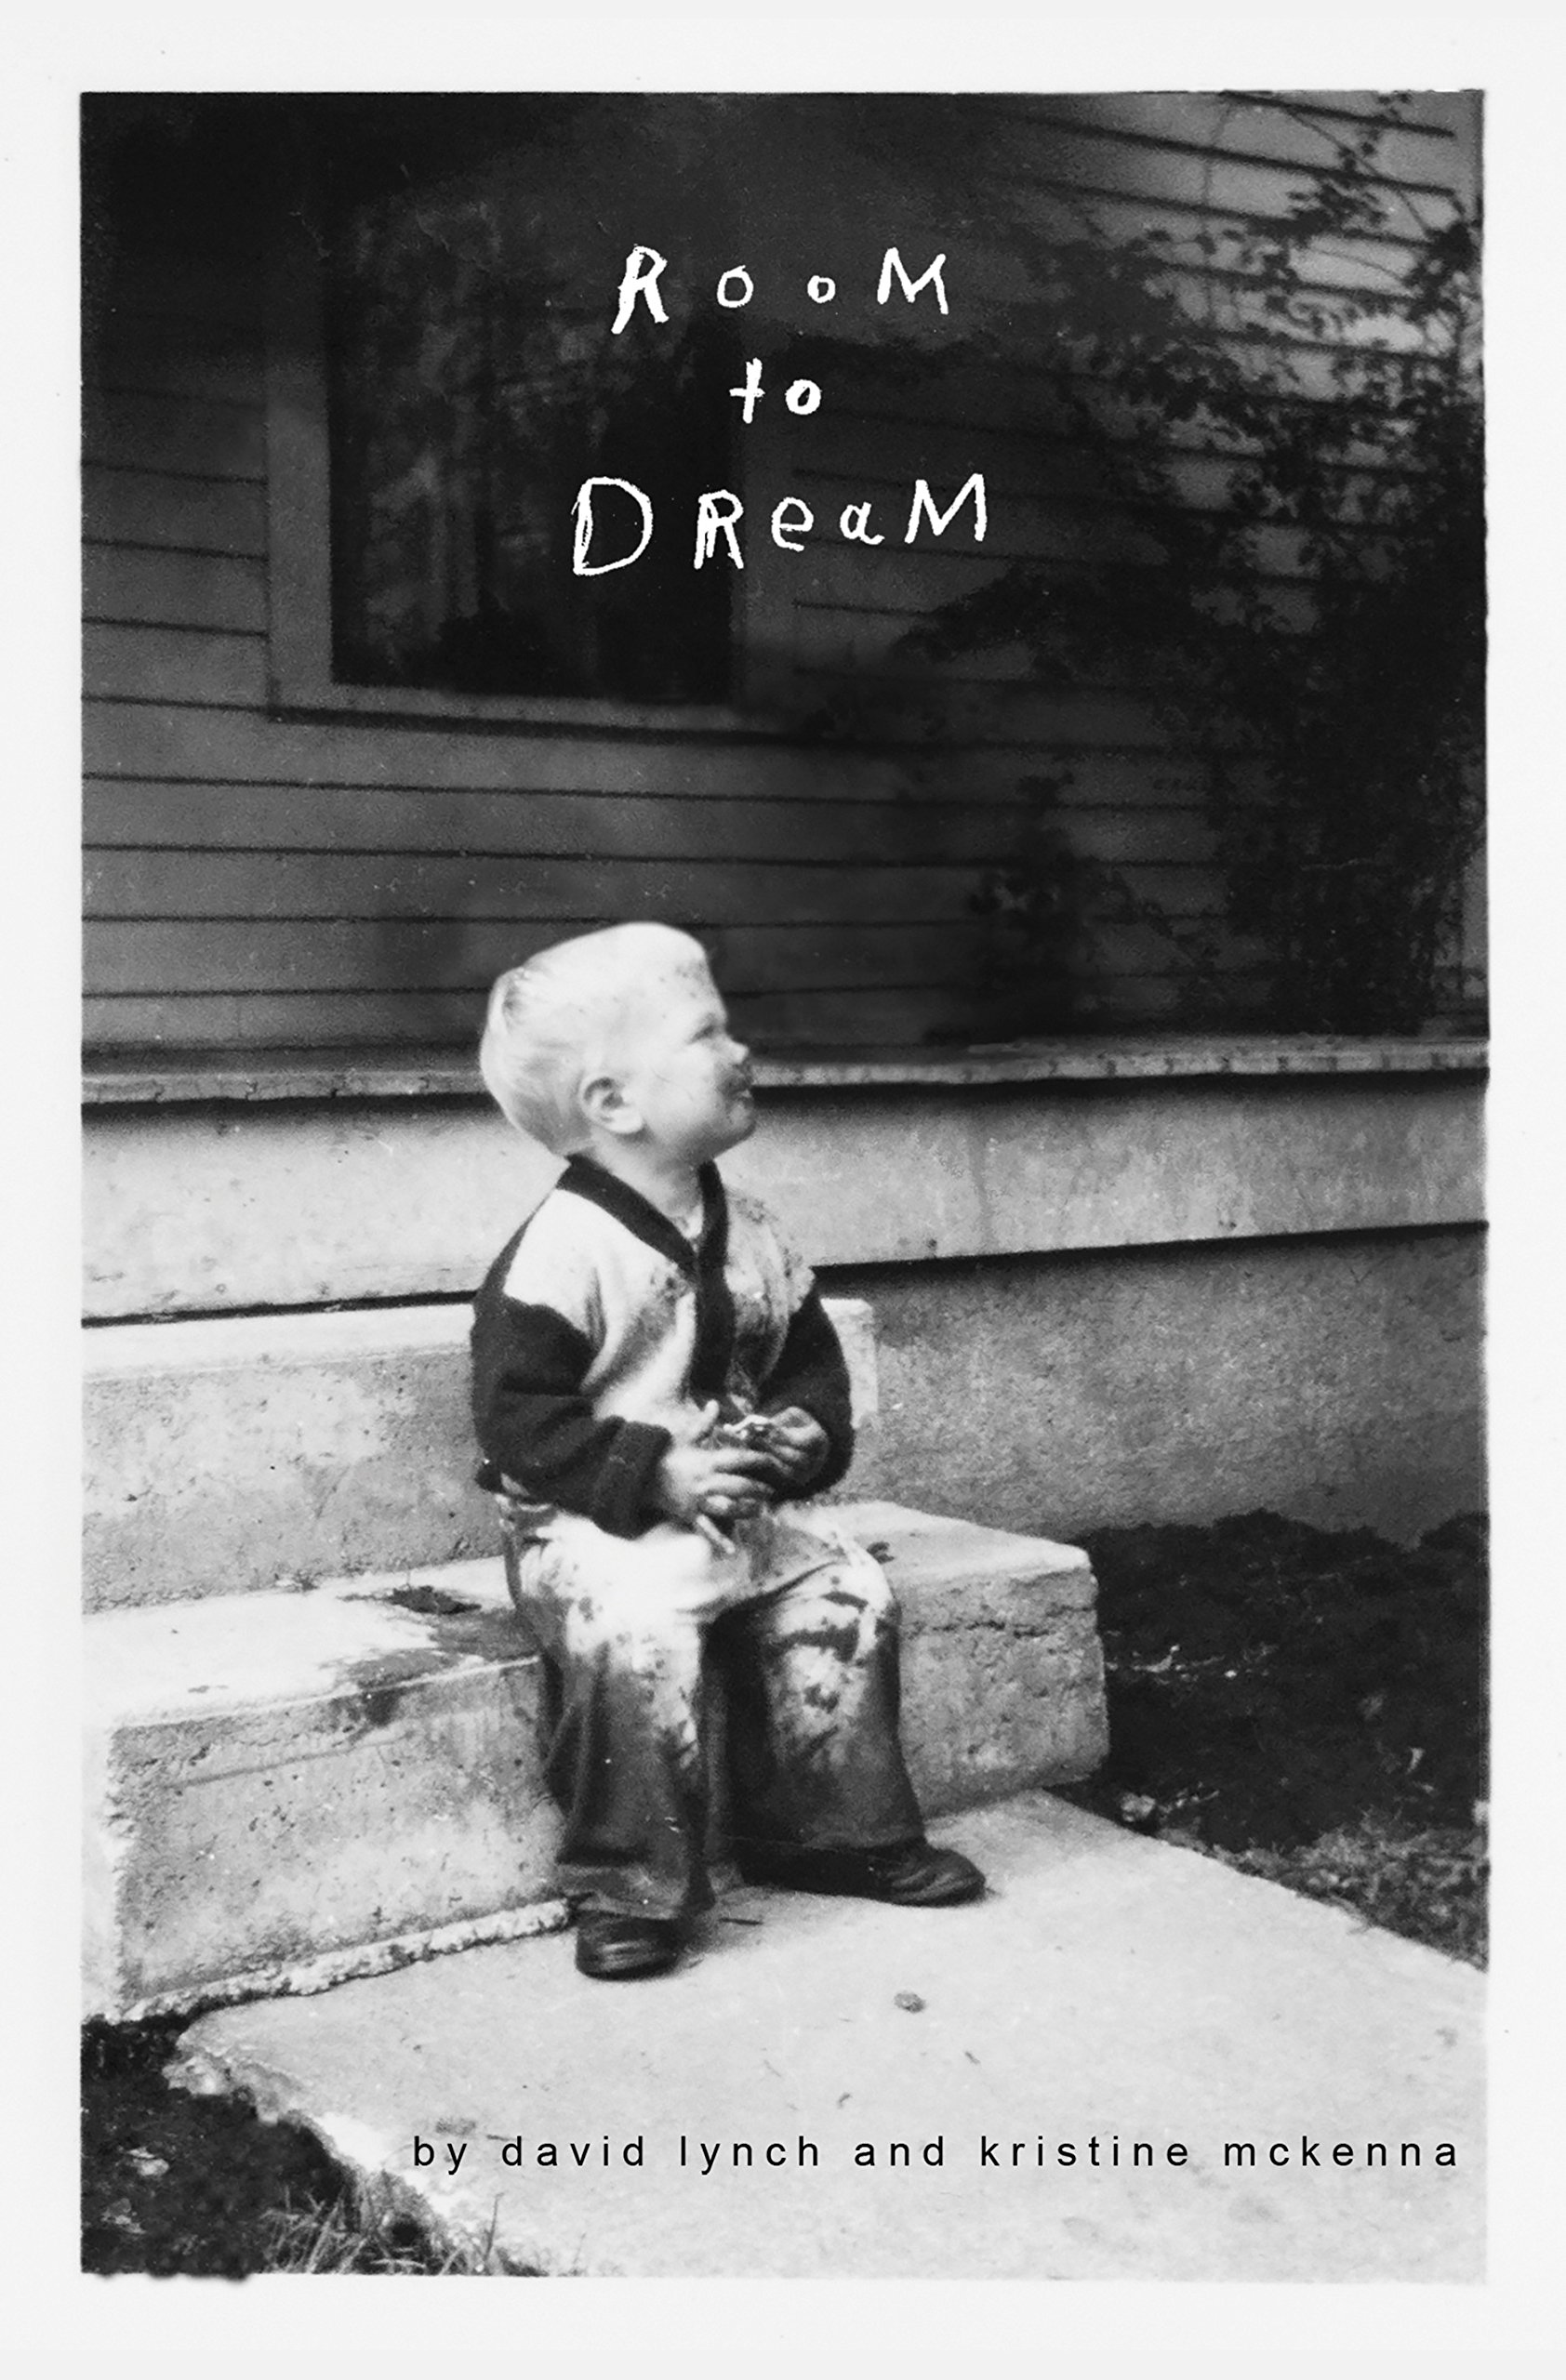 david lynch room to dream book cover David Lynch details hybrid biography/memoir, Room to Dream, arriving next week